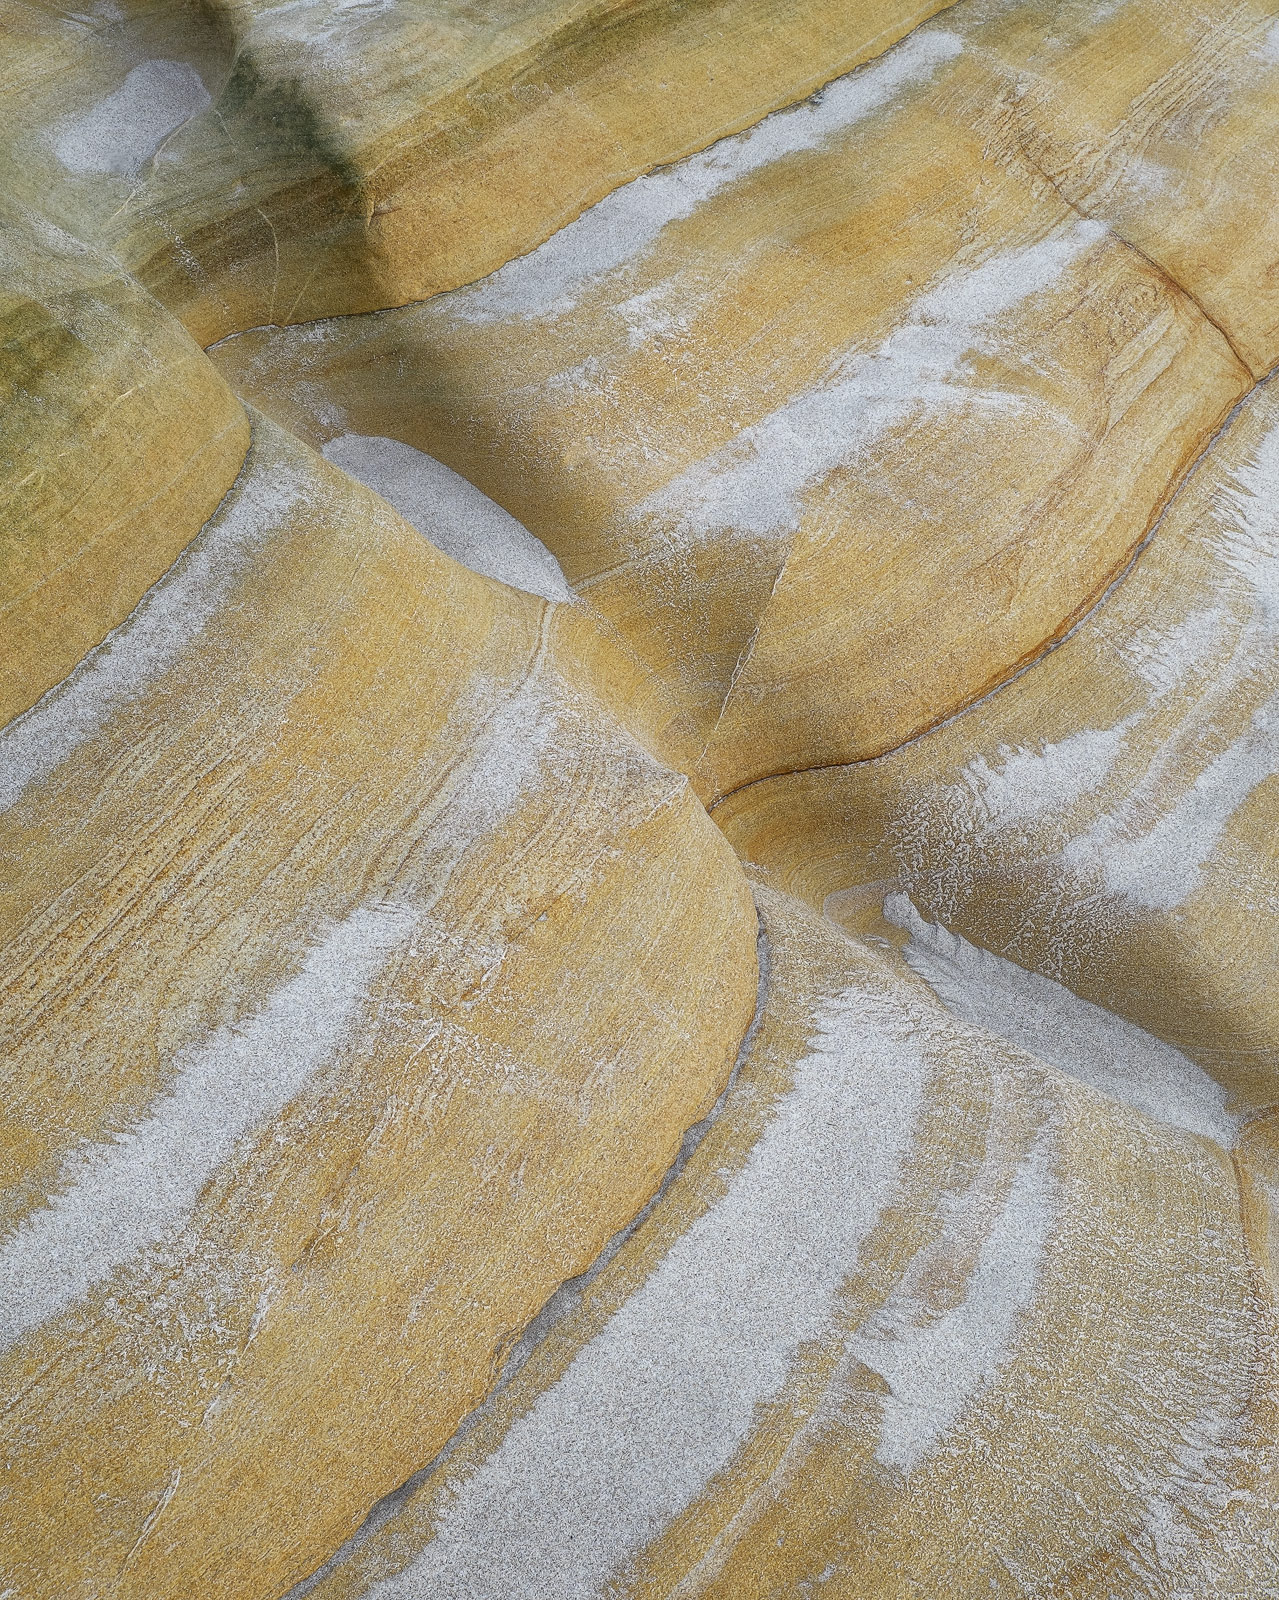 This beautiful sandstone shelf had collected sand in some shallow depressions along its length to form a sandstone torso and...